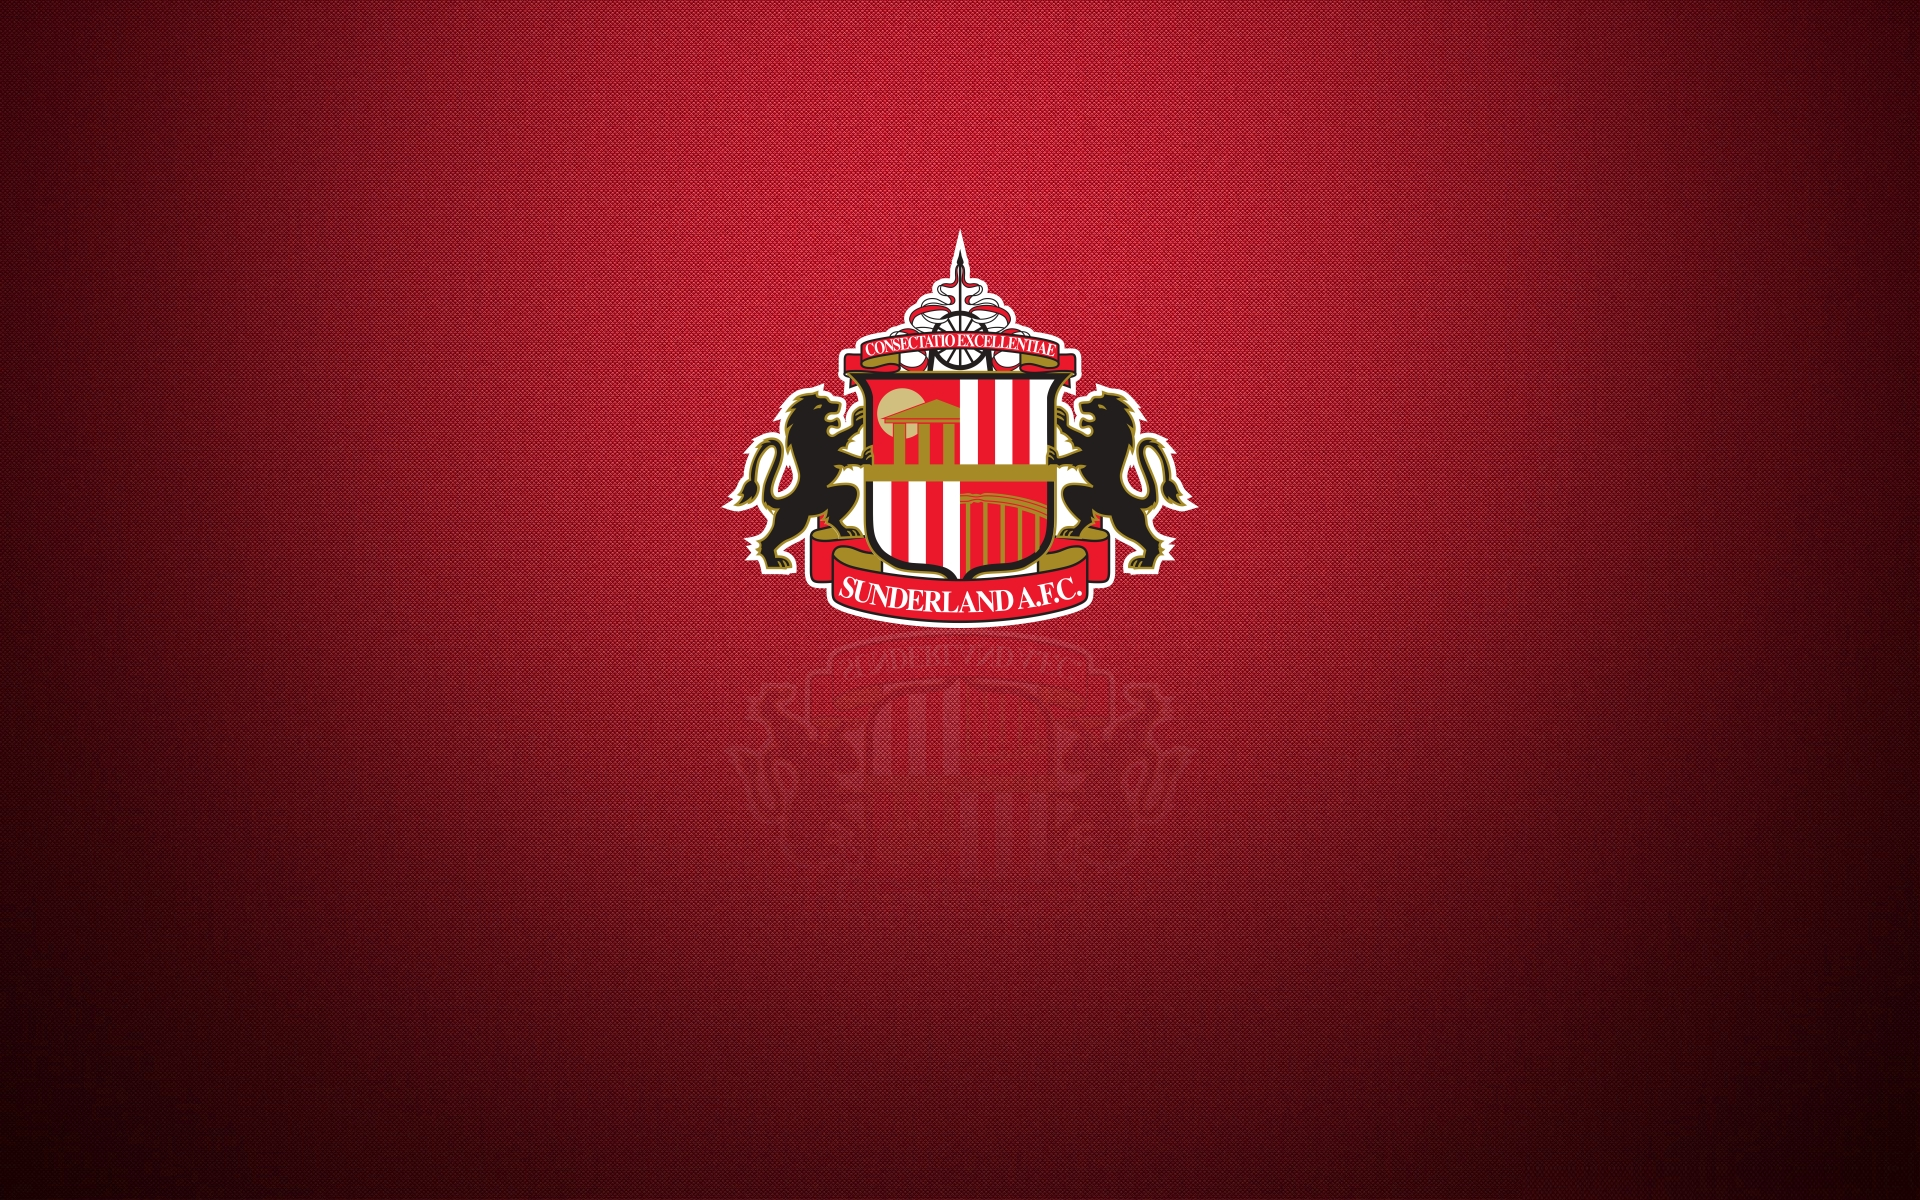 Sunderland A F C Wallpapers Hd Backgrounds 97 images in 1920x1200